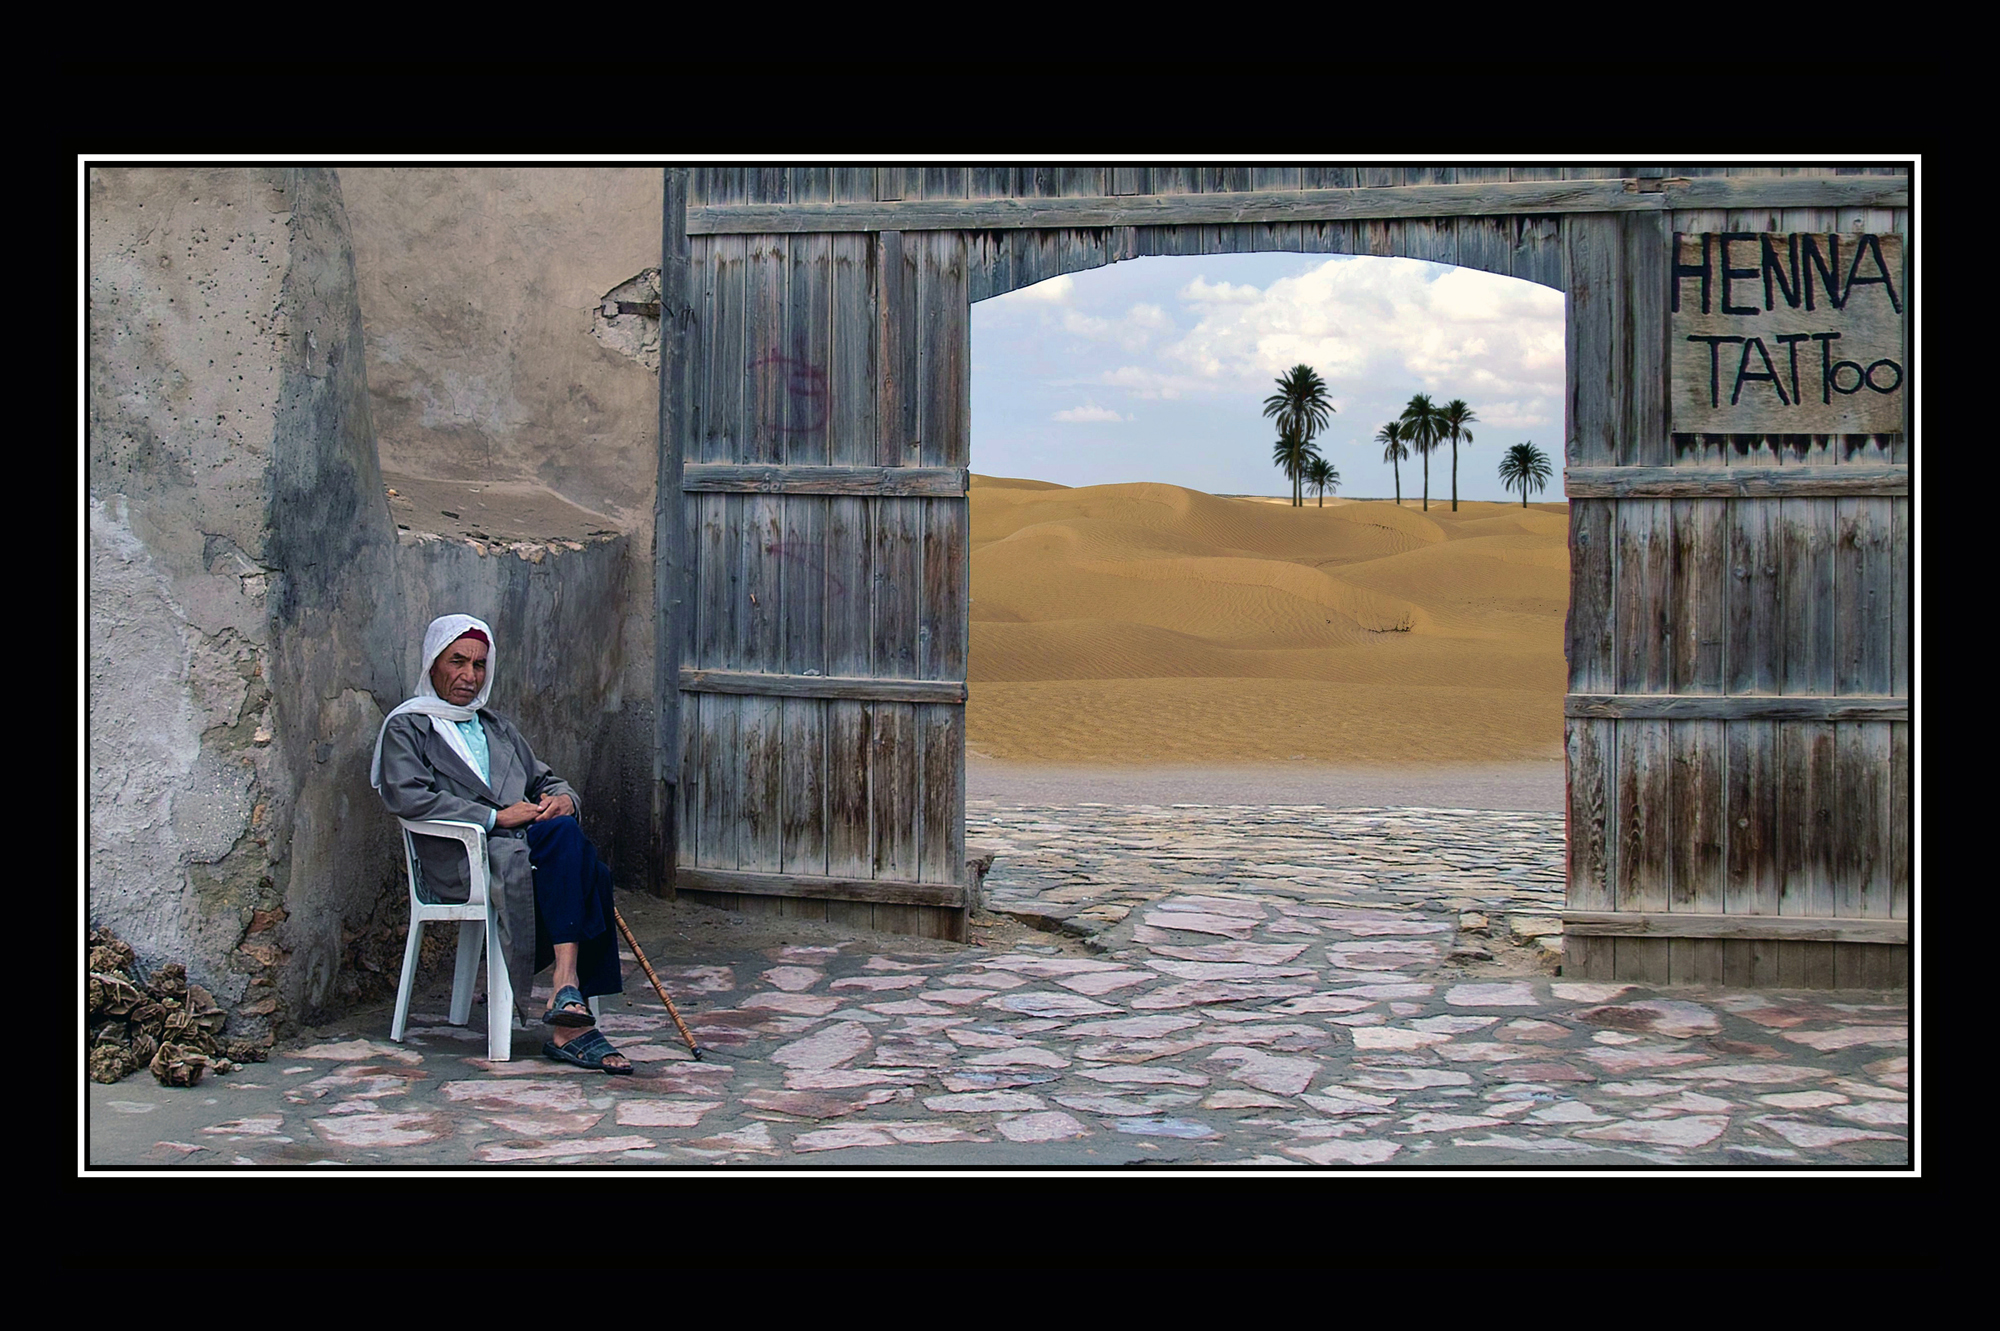 08-The gate of Sahara.jpg